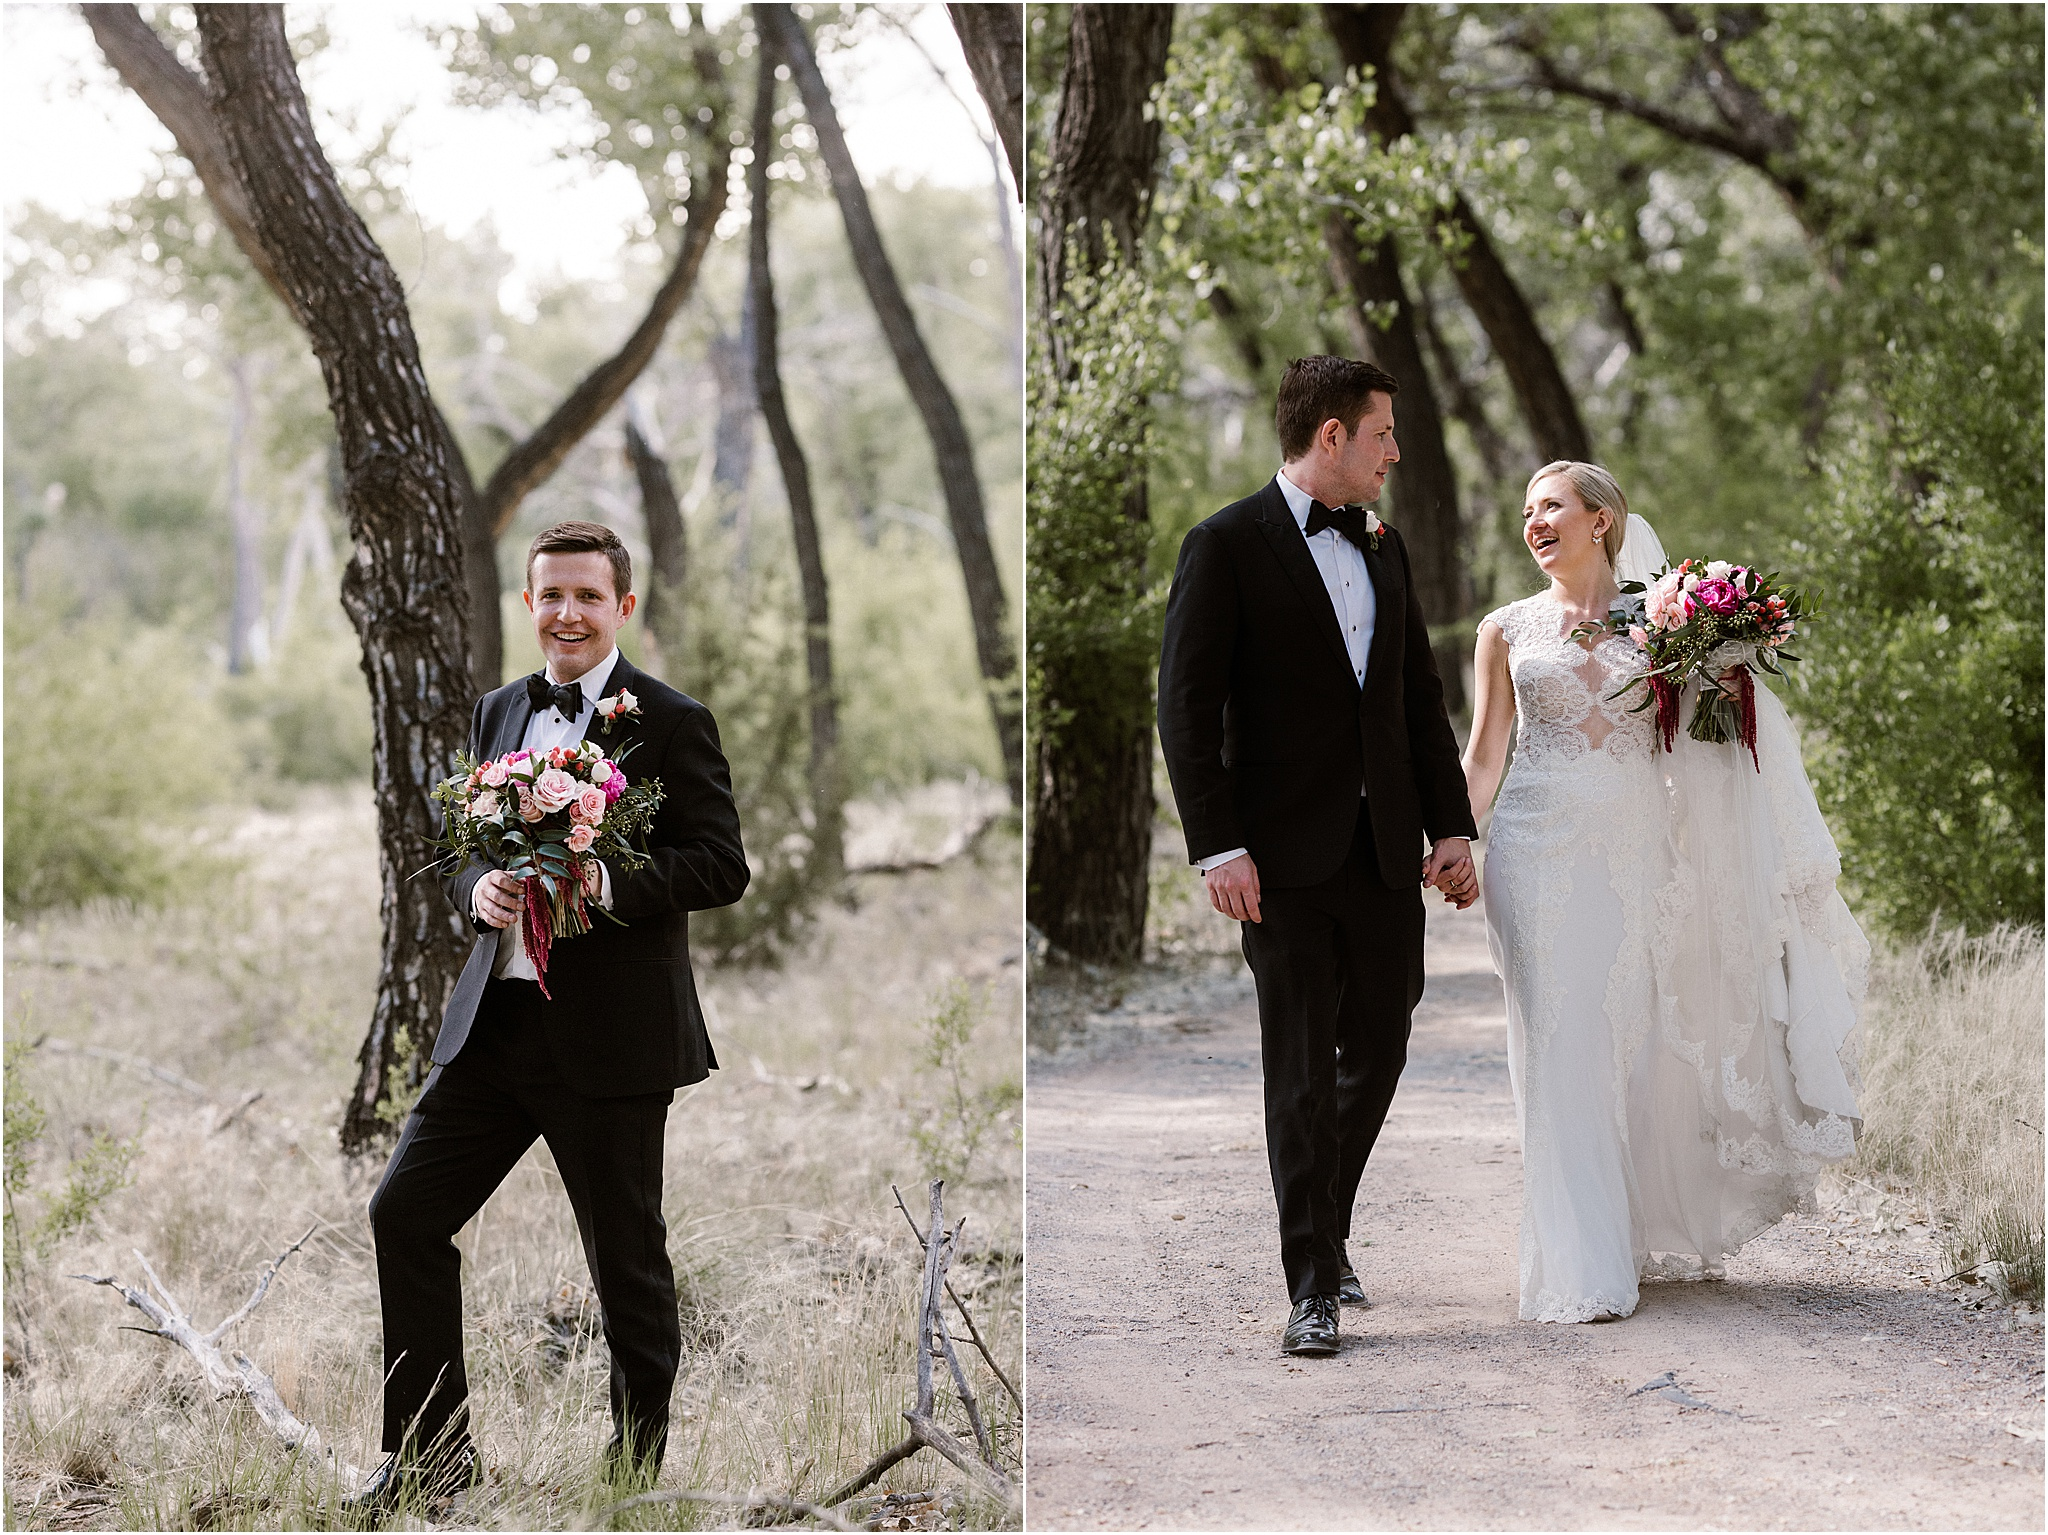 JENNA_JEROME_BLUE ROSE PHOTOGRAPHY_ABQ WEDDING_34